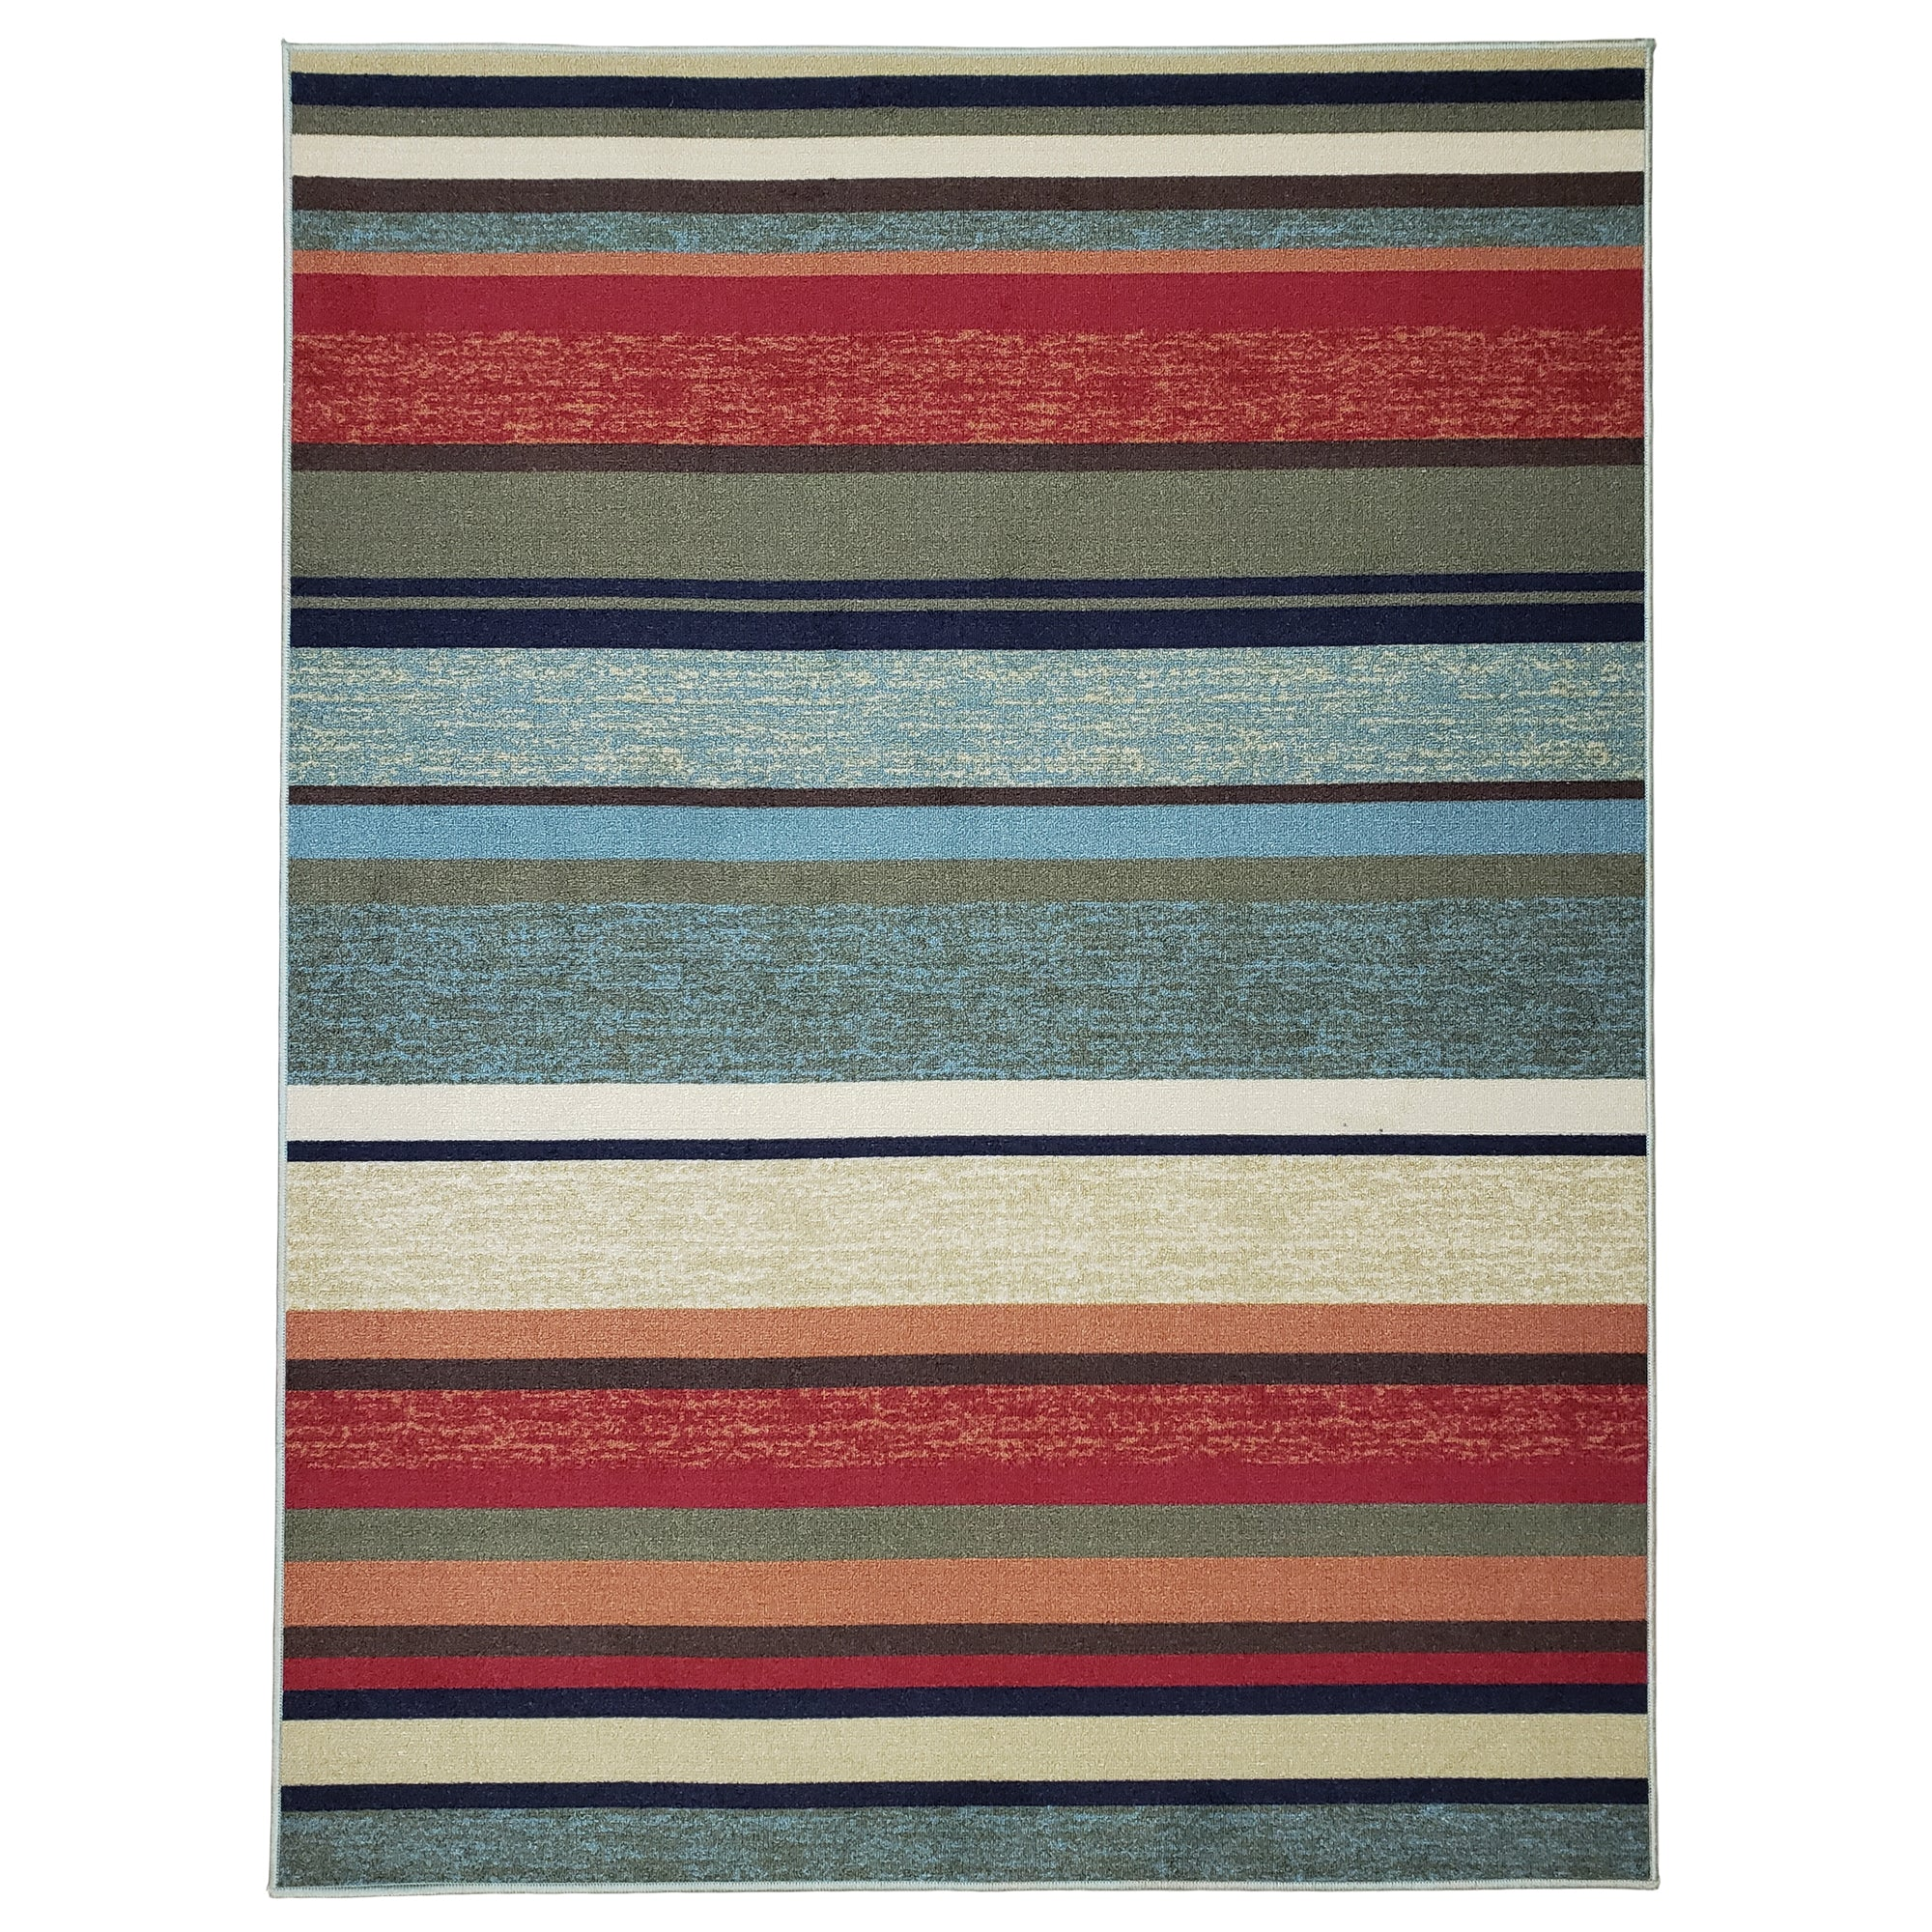 Belgio Rubber Backed Non Slip Rugs and Runners Multi Striped